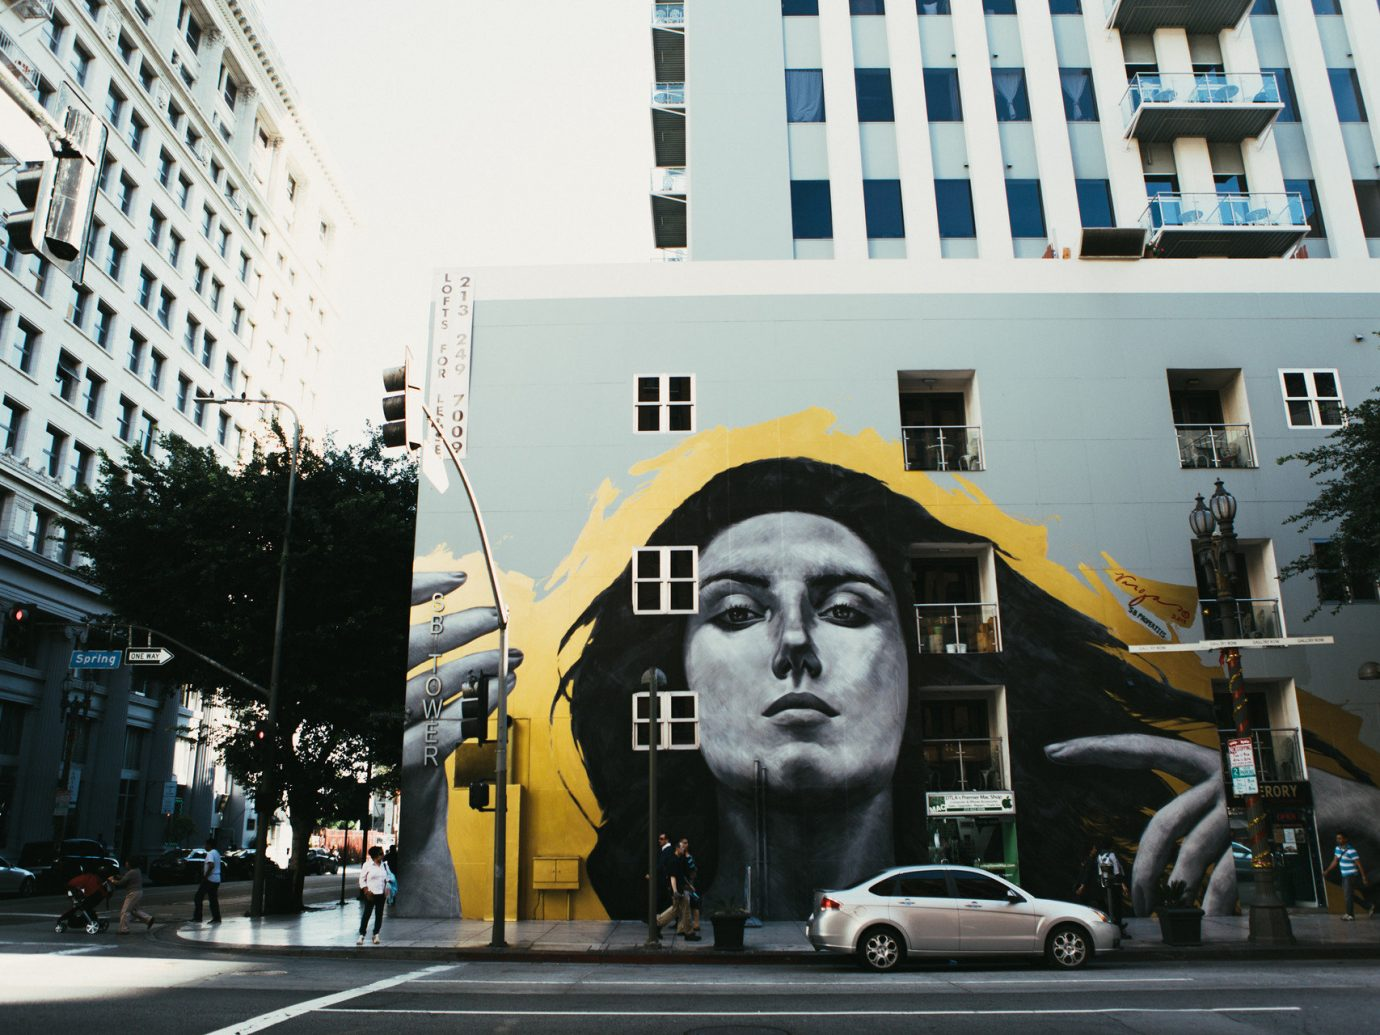 art Buildings City city streets coffee shop Exterior Food + Drink Offbeat street art streets Travel Trends building road outdoor street urban area metropolis Downtown infrastructure mural facade pedestrian advertising cityscape apartment building